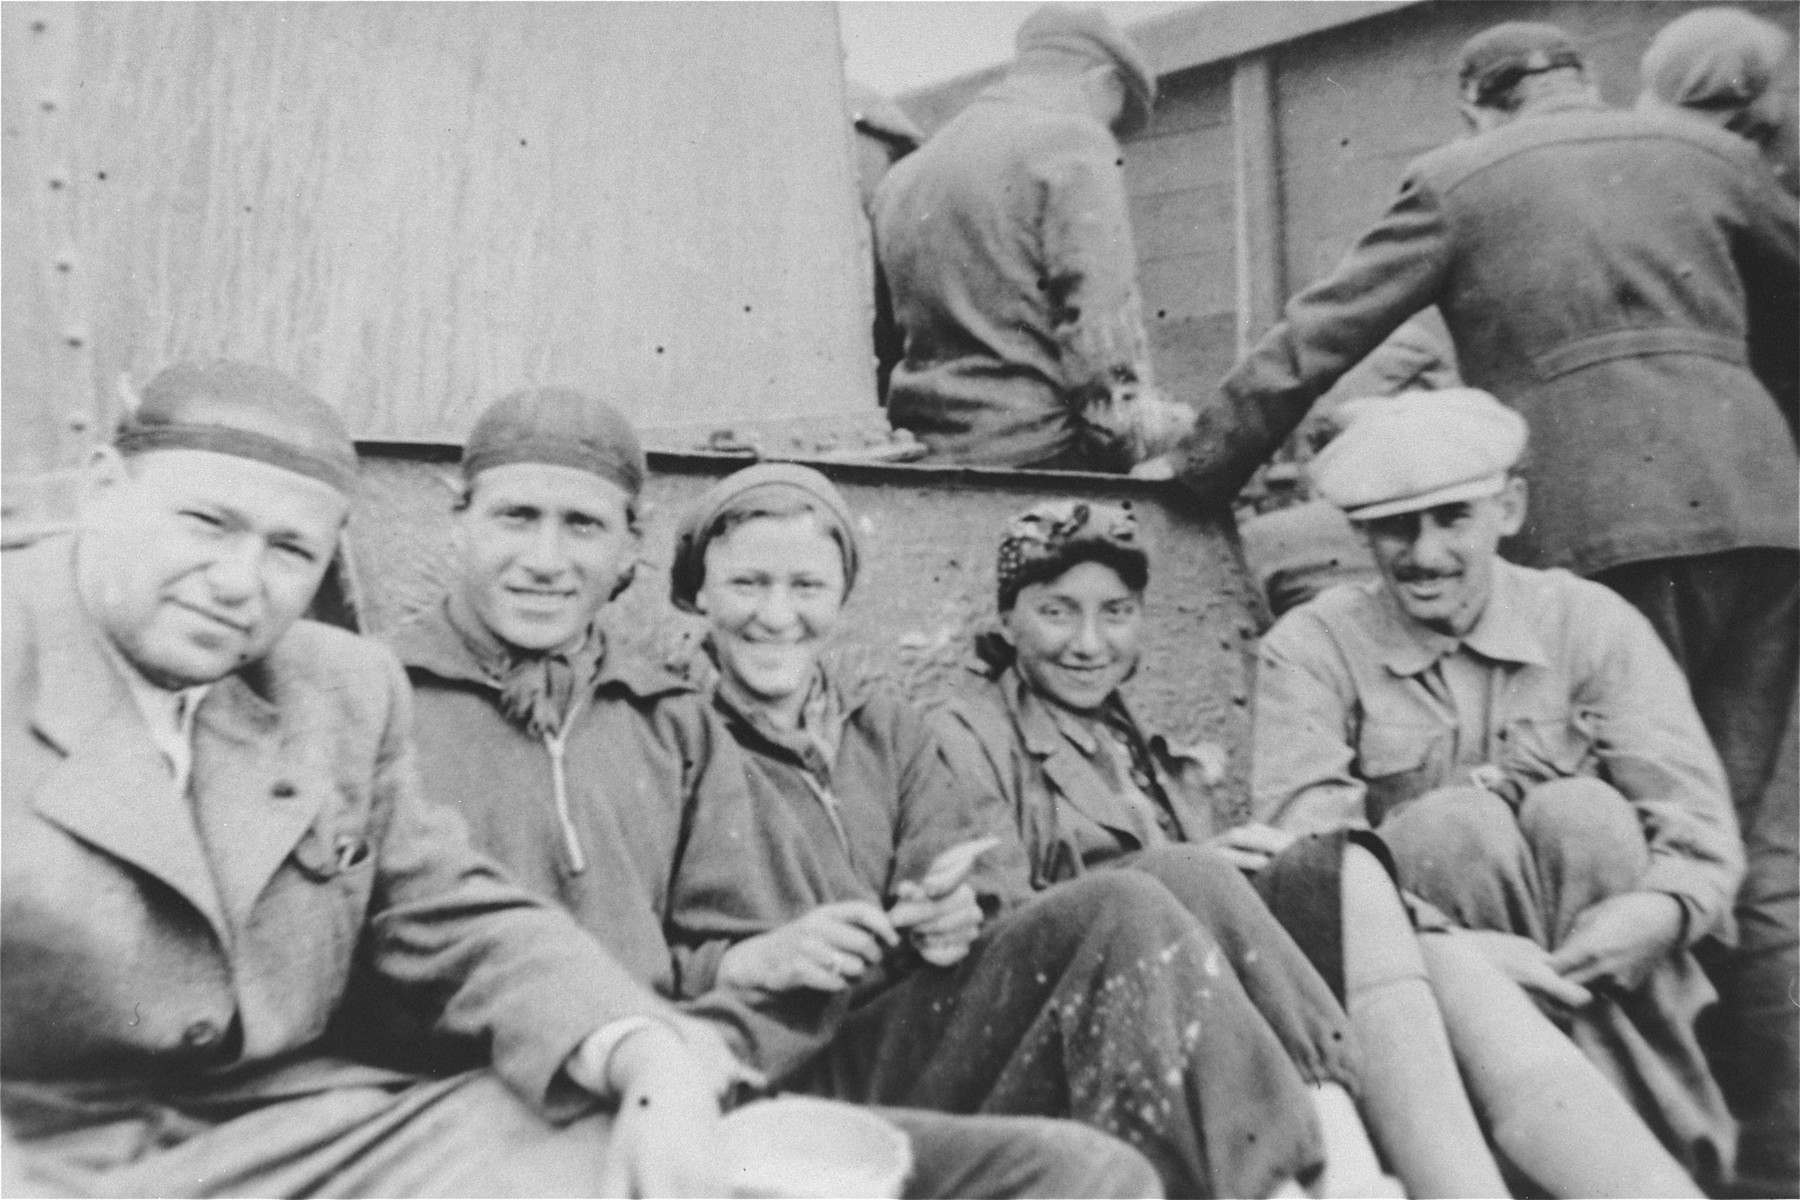 Group portrait taken of the Rettinger family with friends on board the Aegus Nicolau en route to Palestine.